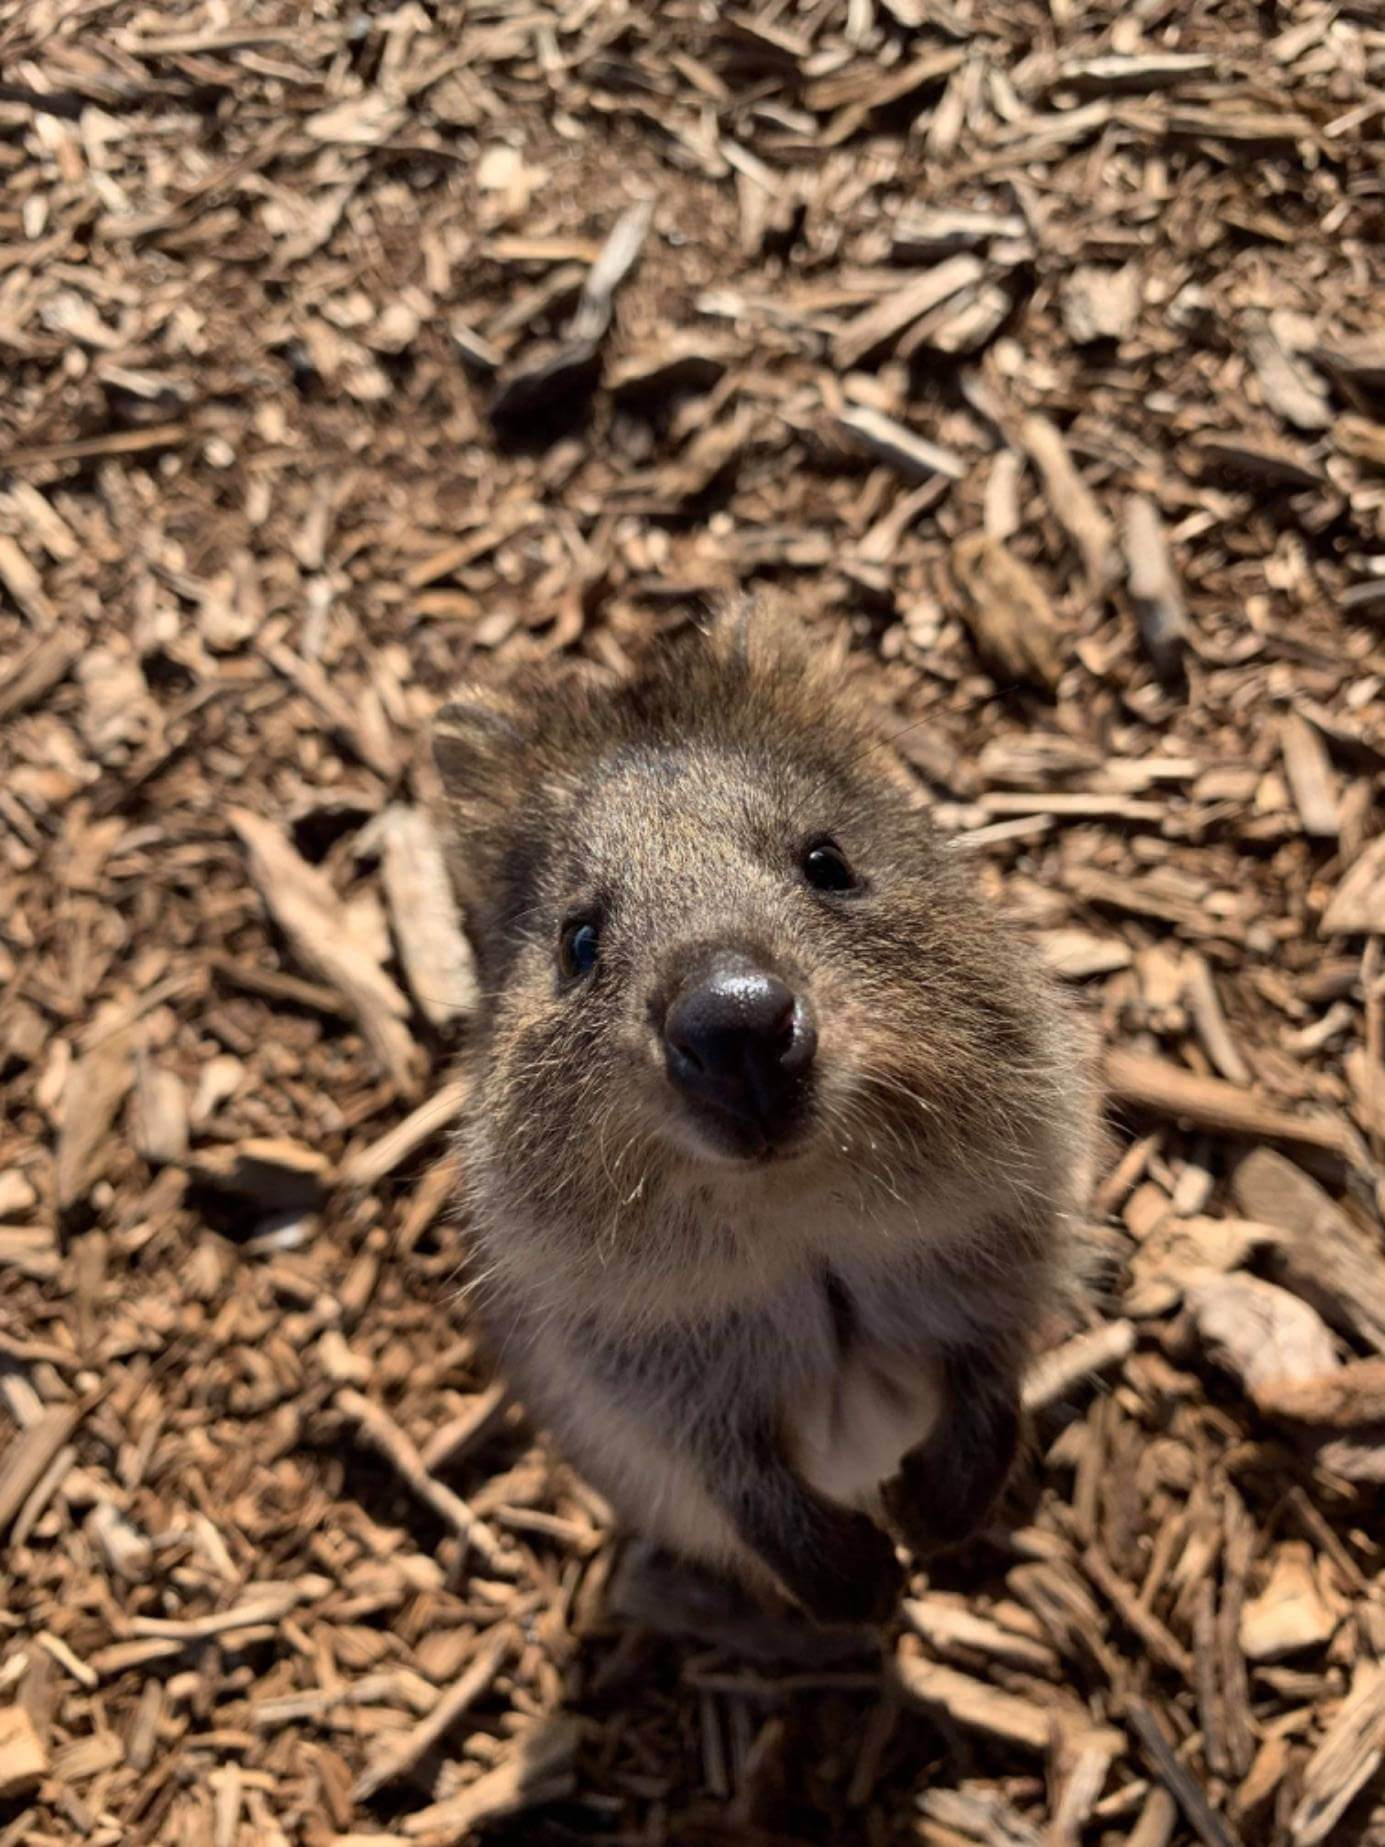 4WD Accidents: What to do if you hit an animal while driving